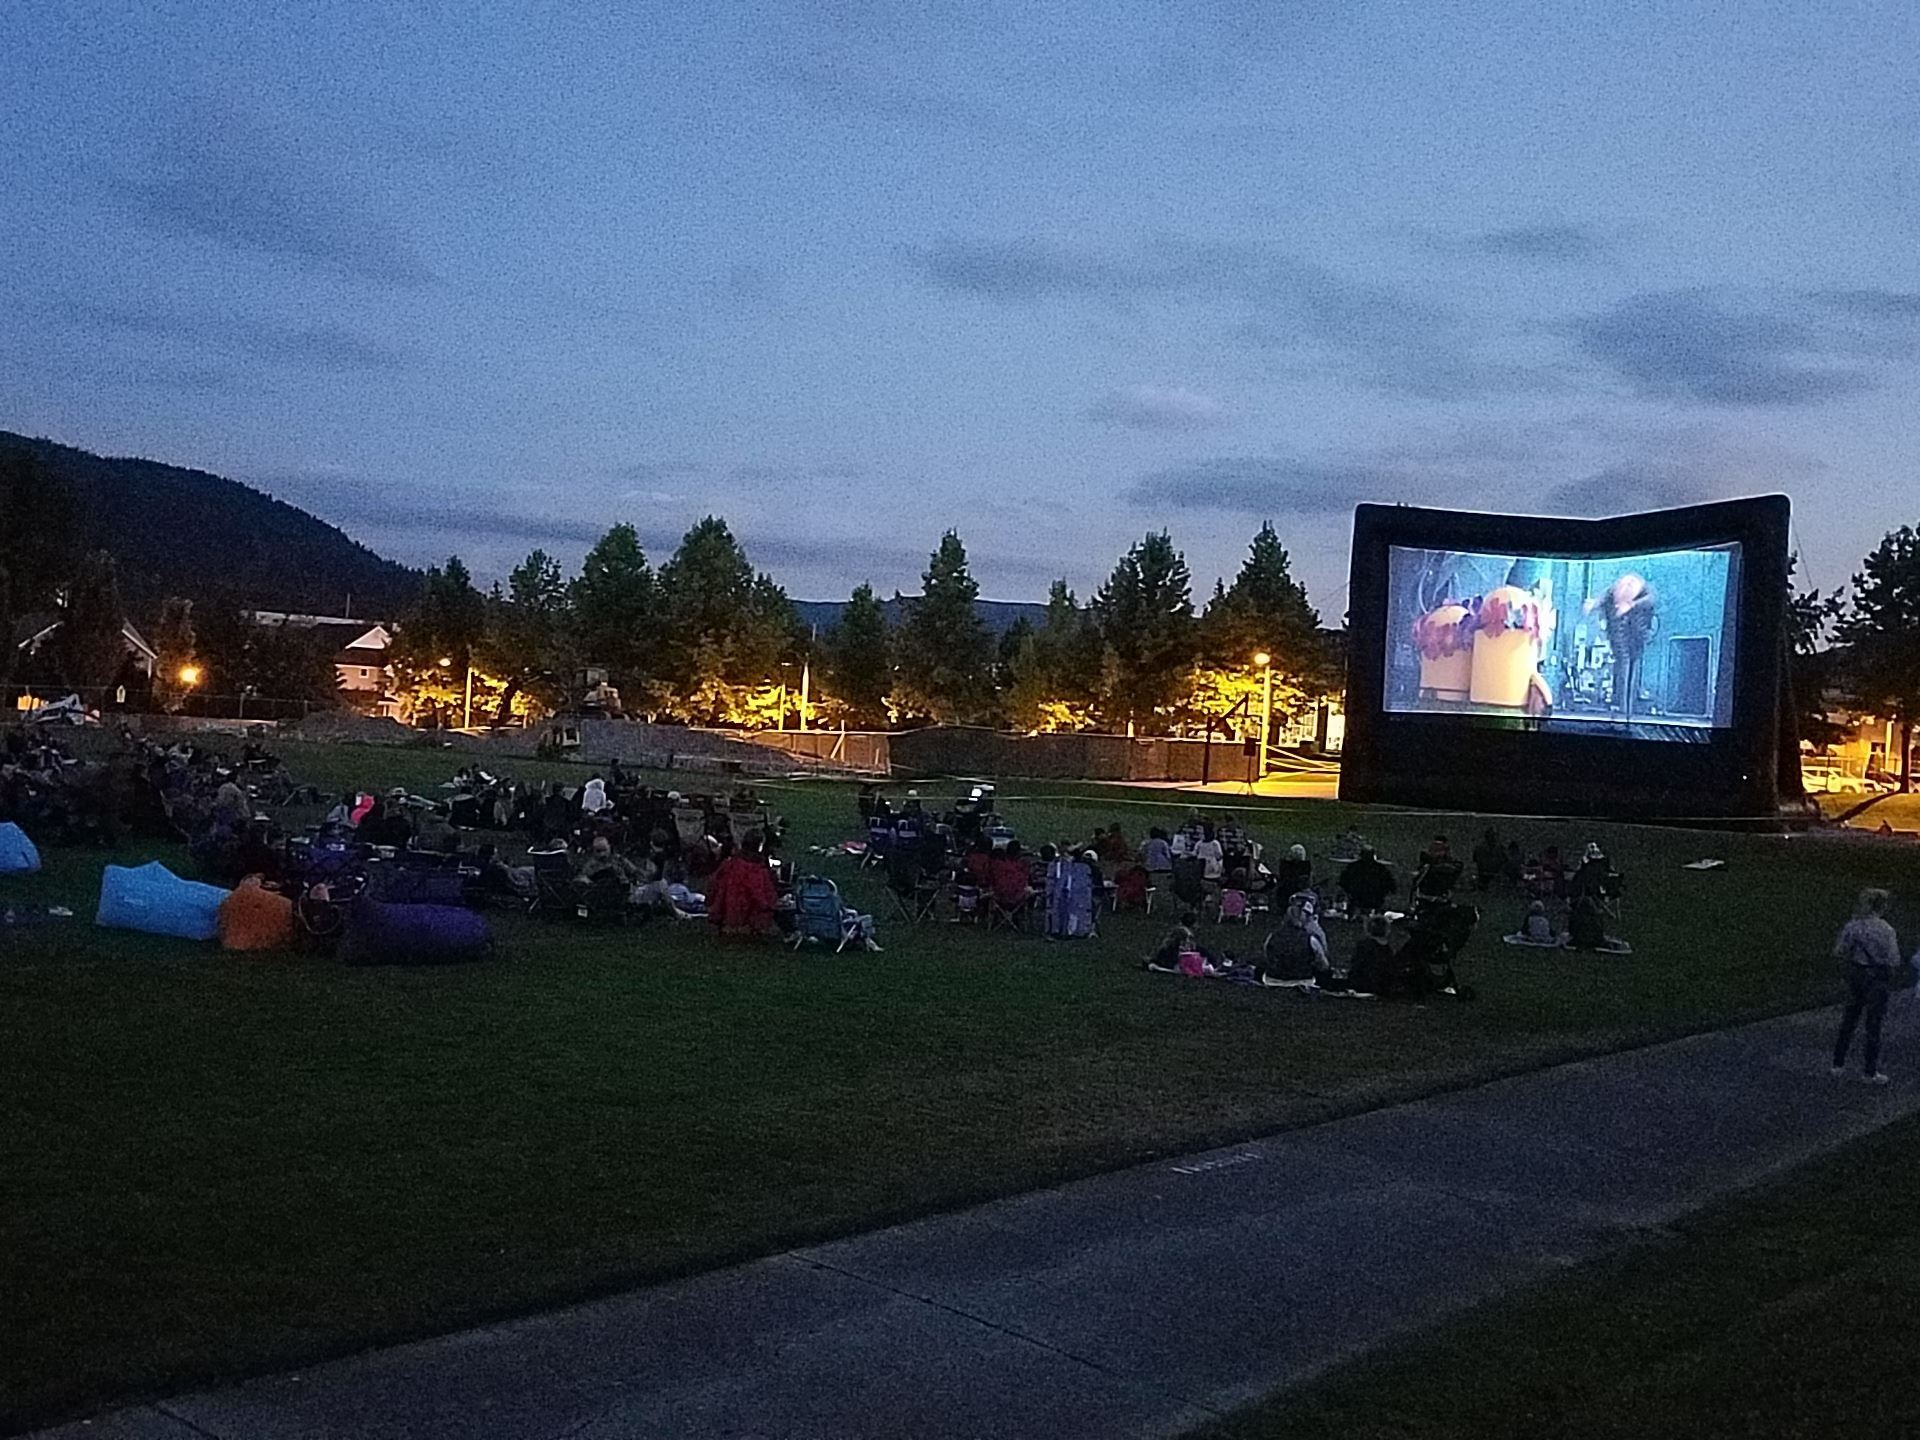 This is a photo of an outdoor movie at Snoqualmie Community Park